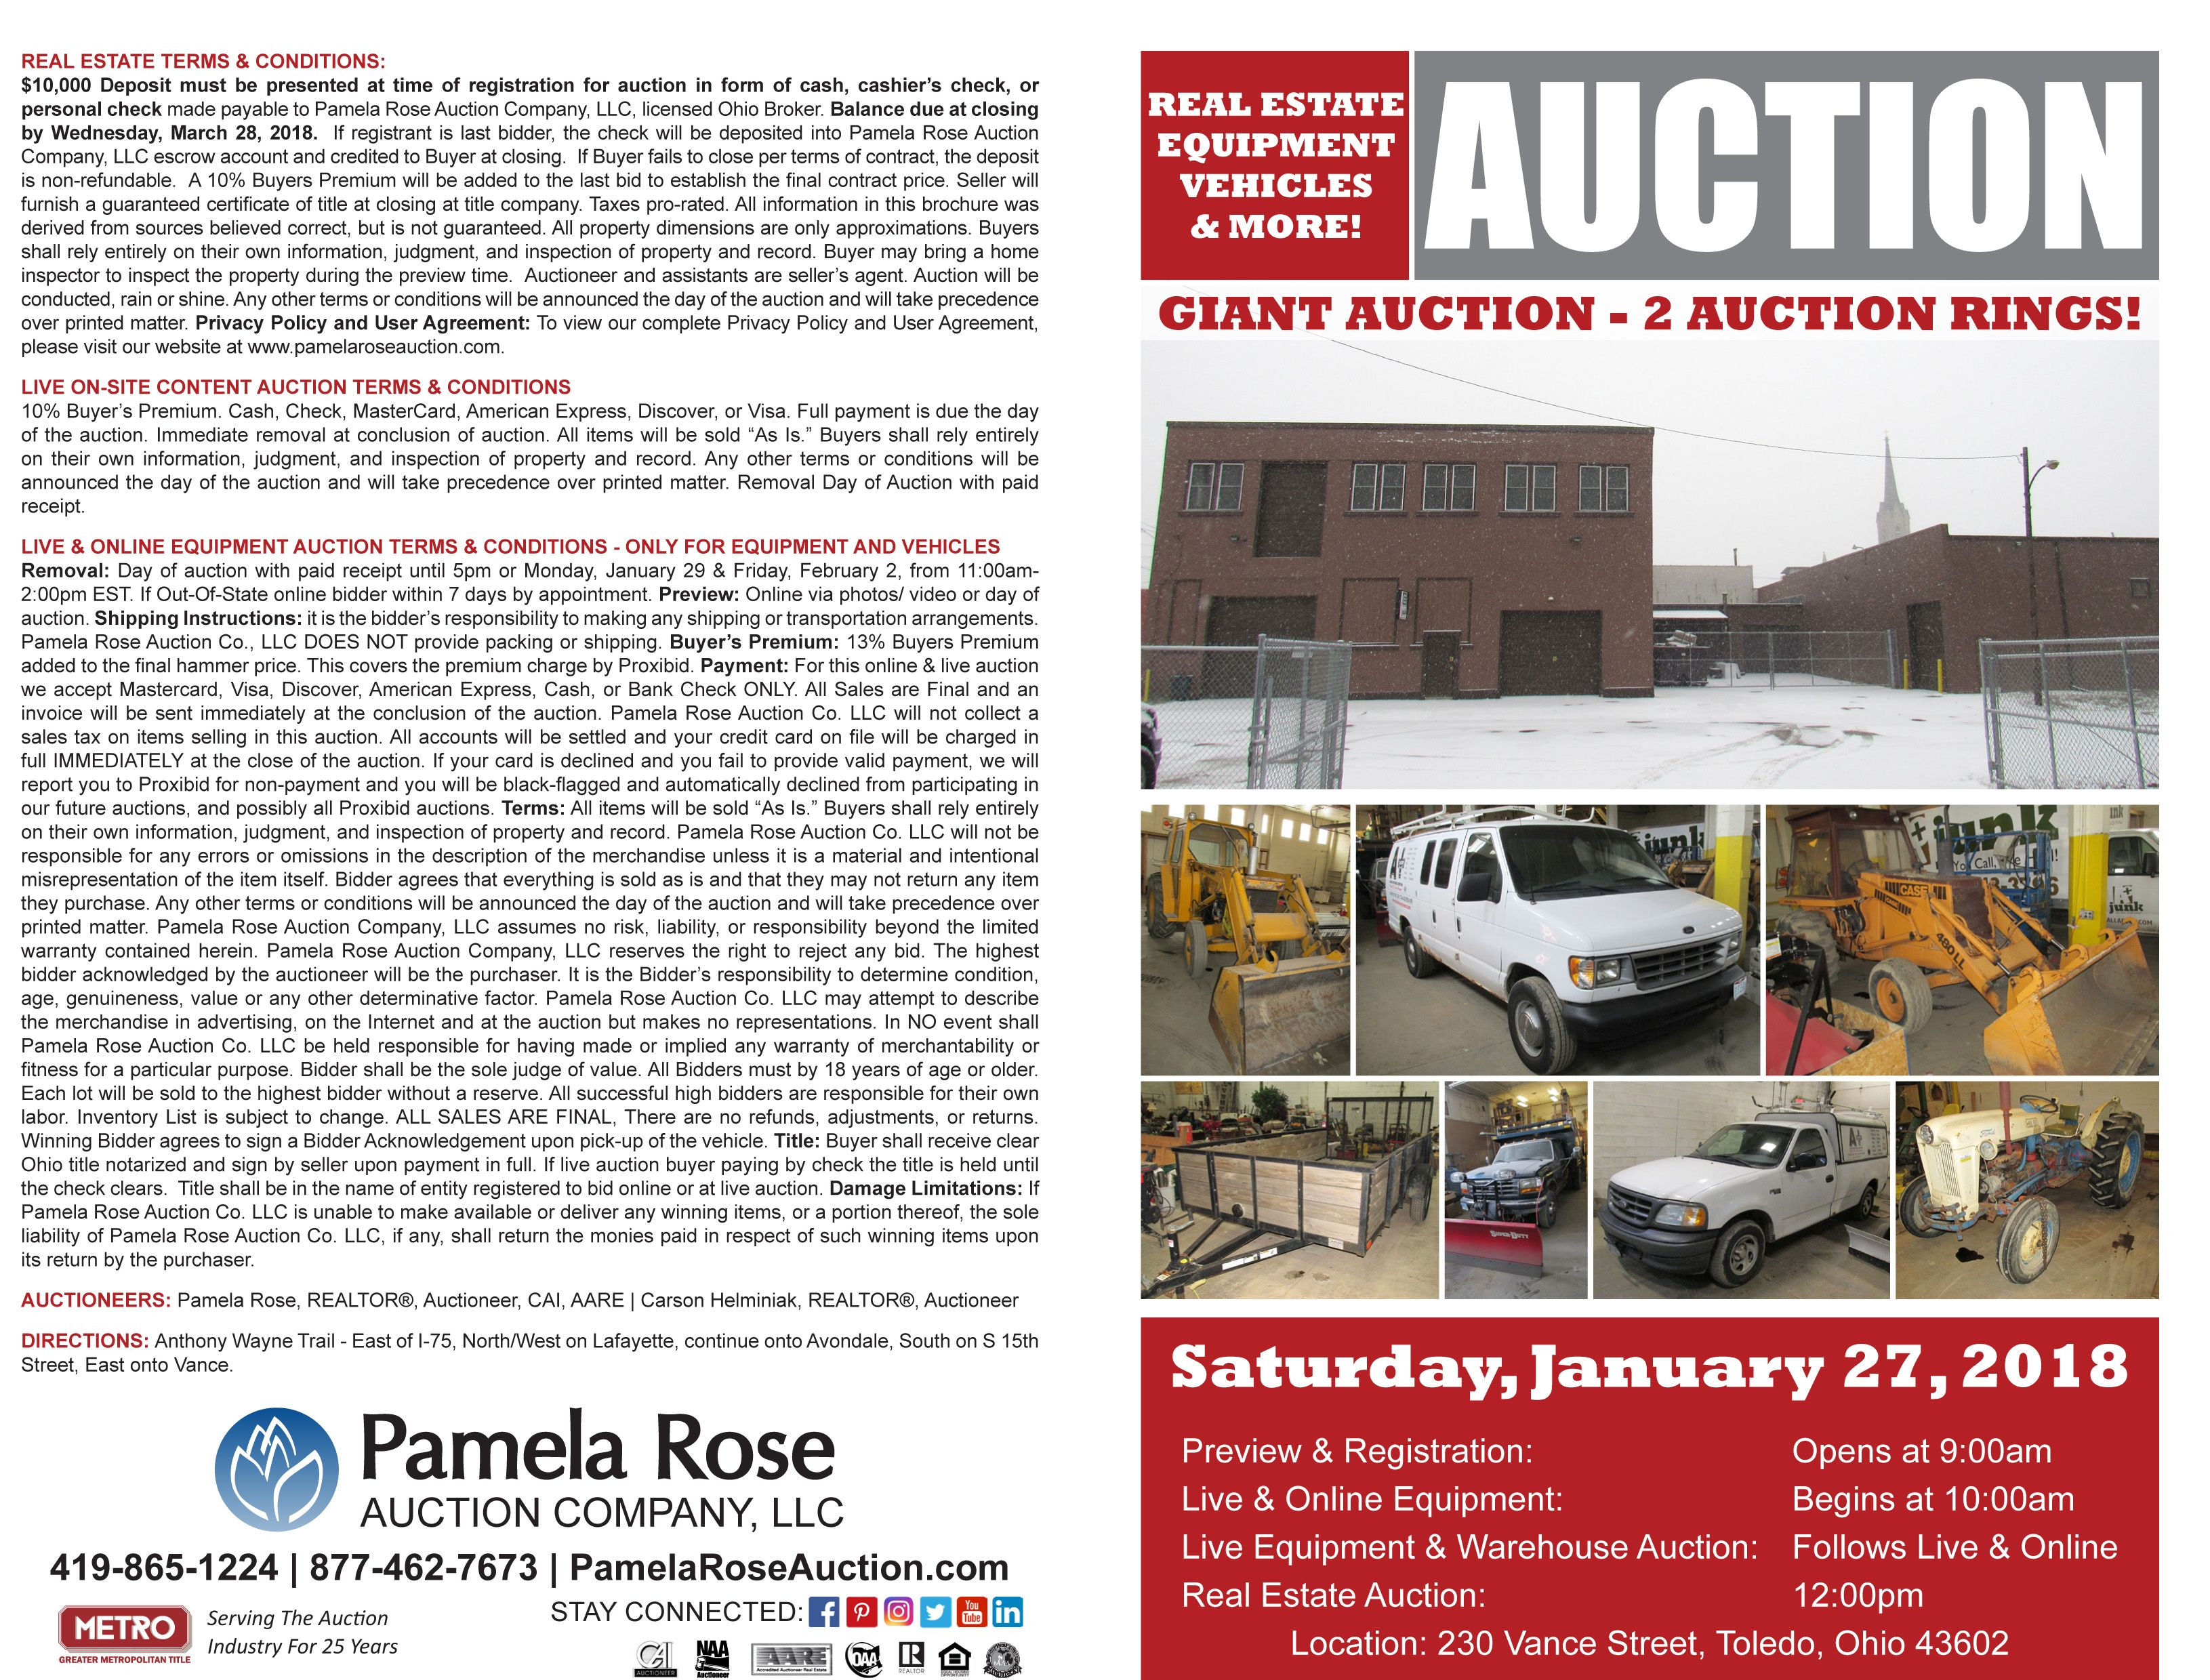 Downtown Commercial Warehouse at Auction – Building and Equipment! 214 and 230 Vance Street, Toledo, Ohio 43604 on Saturday, January 27, 2018. Warehouse Auction at 12 pm! Impeccable 21,900+/- SF building at Minimum Bid $90,000! Prime location near downtown Toledo off I-75 and AW Trail. Two connected buildings, large office, multiple bays for storage, mechanics bay, loading with multiple overhead doors, and fenced in parking between buildings. Large Equipment and Vehicle Auction at 10 am.